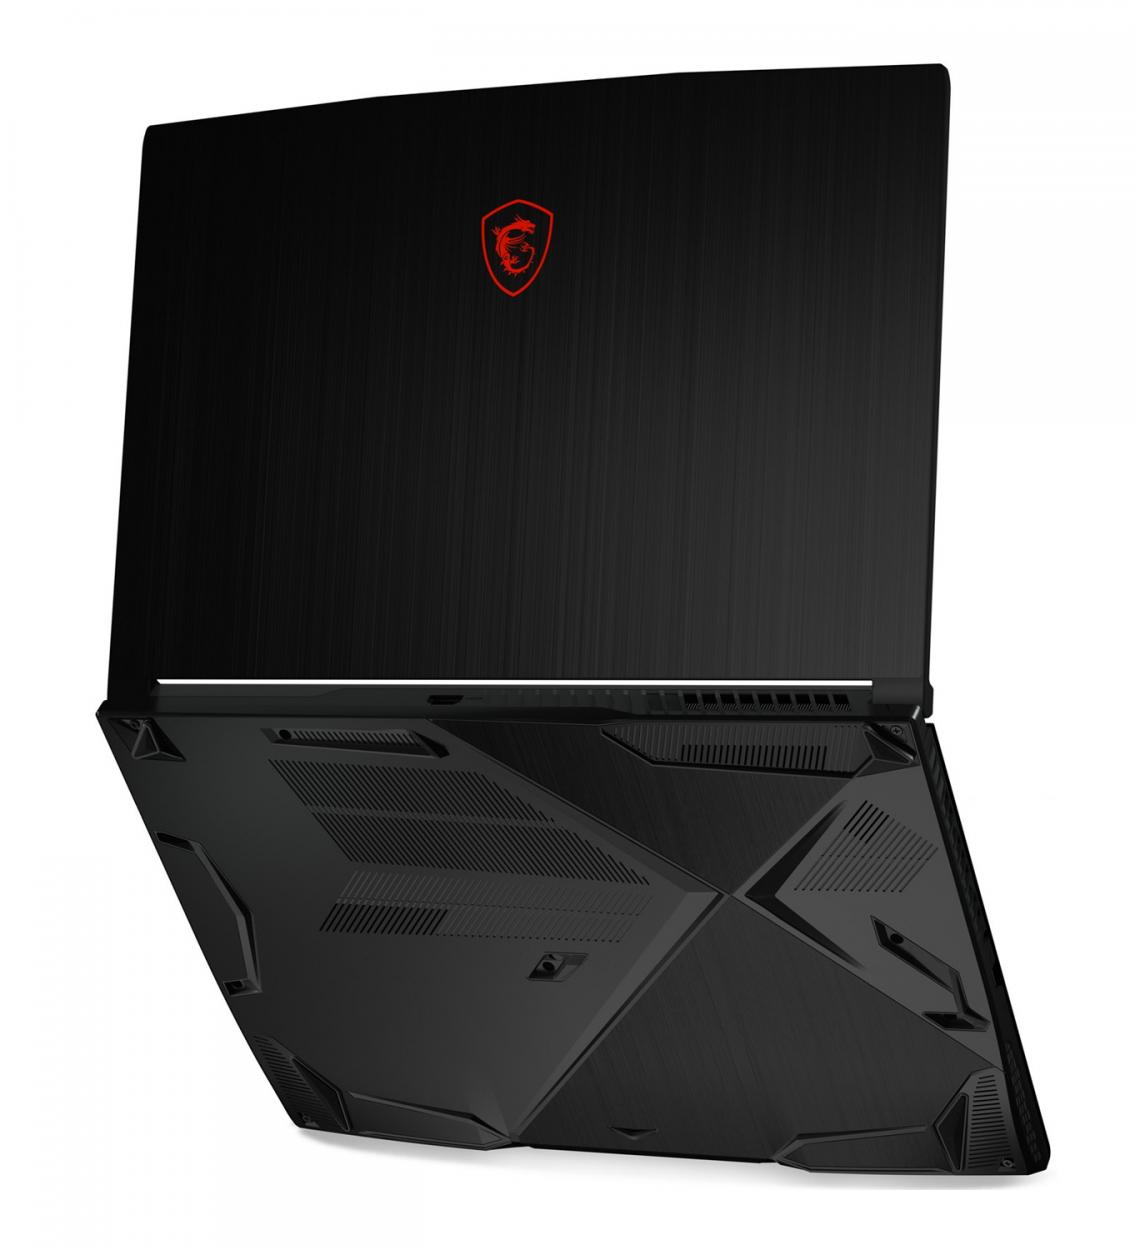 Image du PC portable MSI GF63 8RC-290FR - GTX 1050, IPS